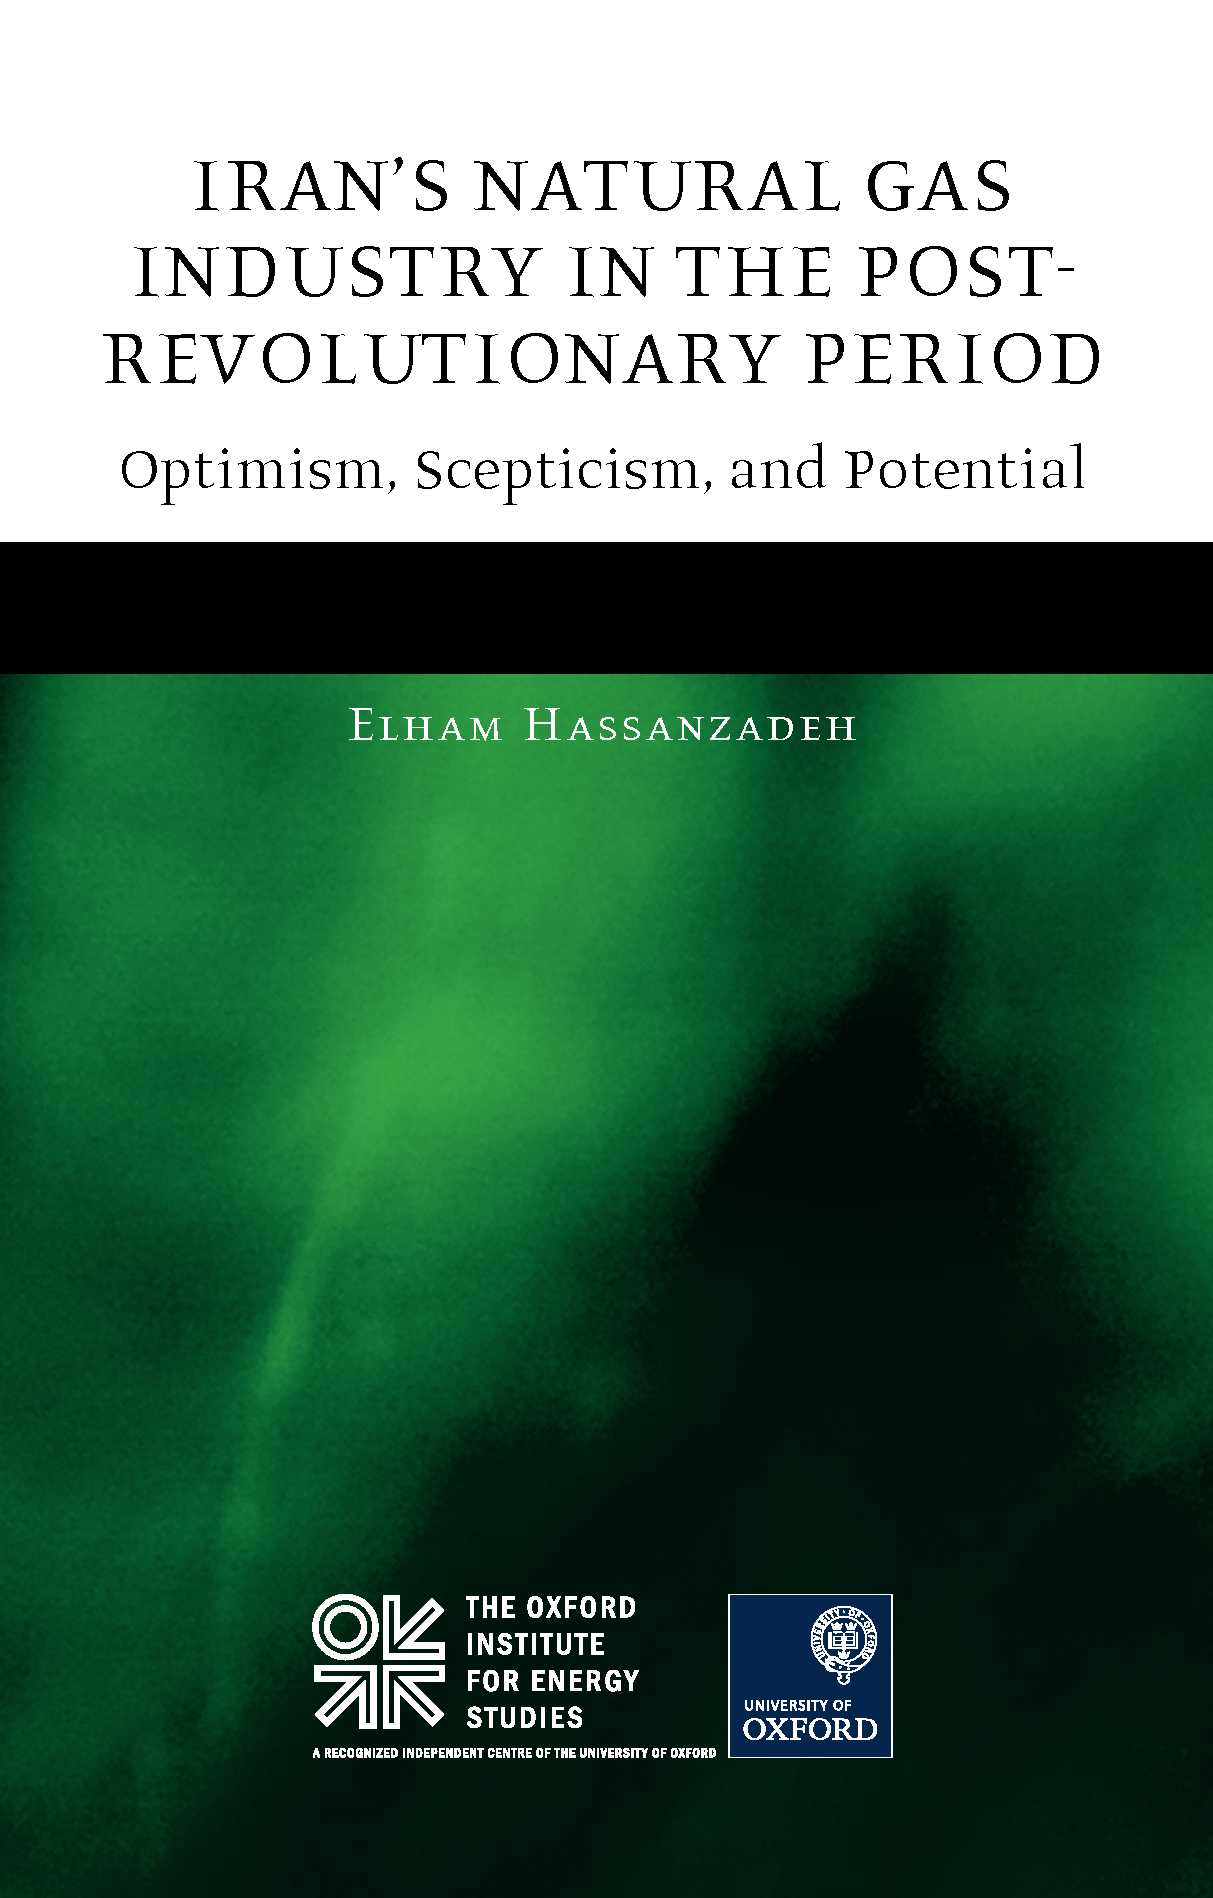 Iran's Natural Gas Industry in the Post-Revolutionary Period – Optimism,  Scepticism and Potential